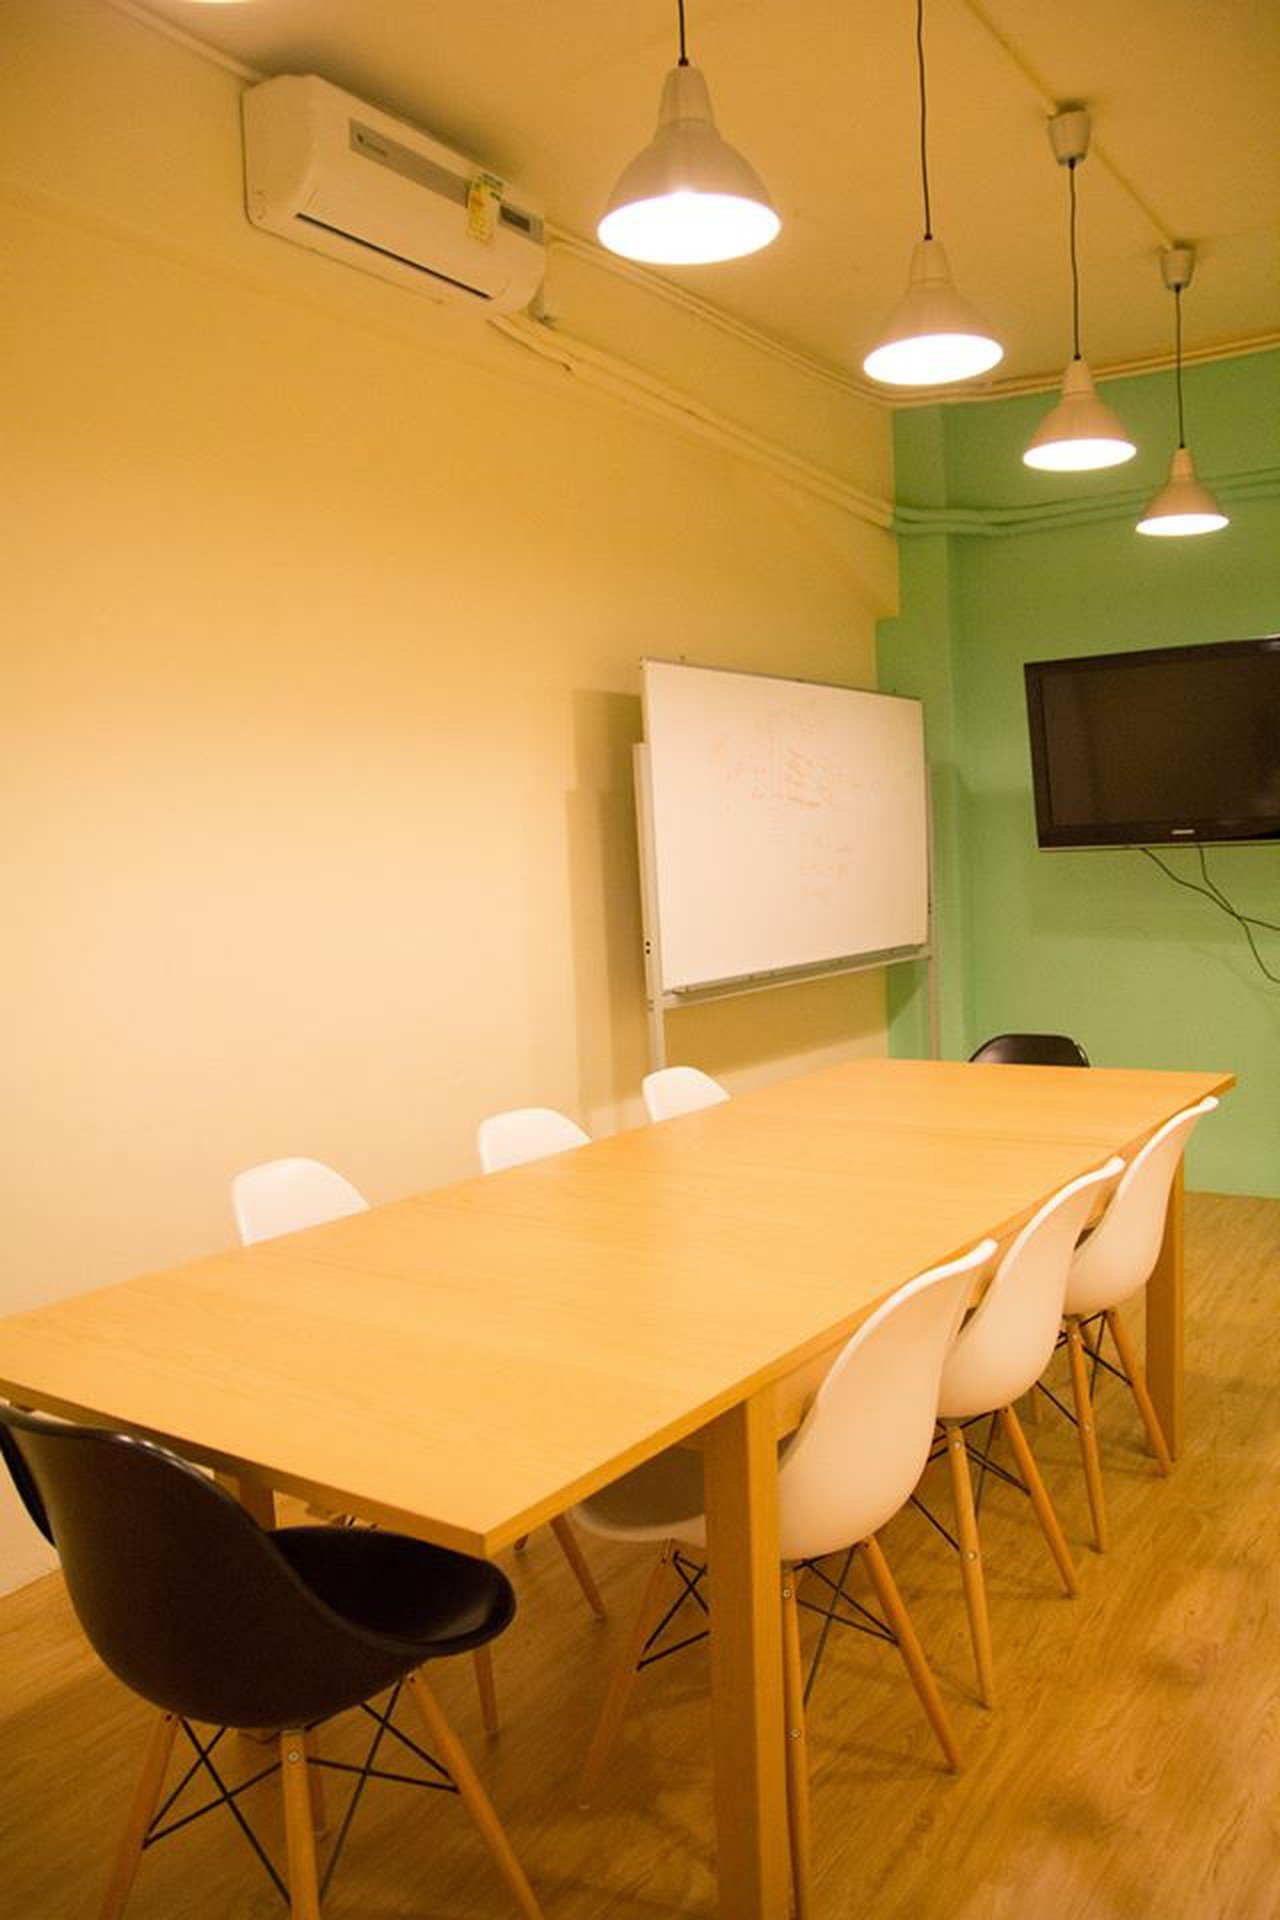 Hong Kong conference rooms Meetingraum Retro Spot - Meeting Room image 10